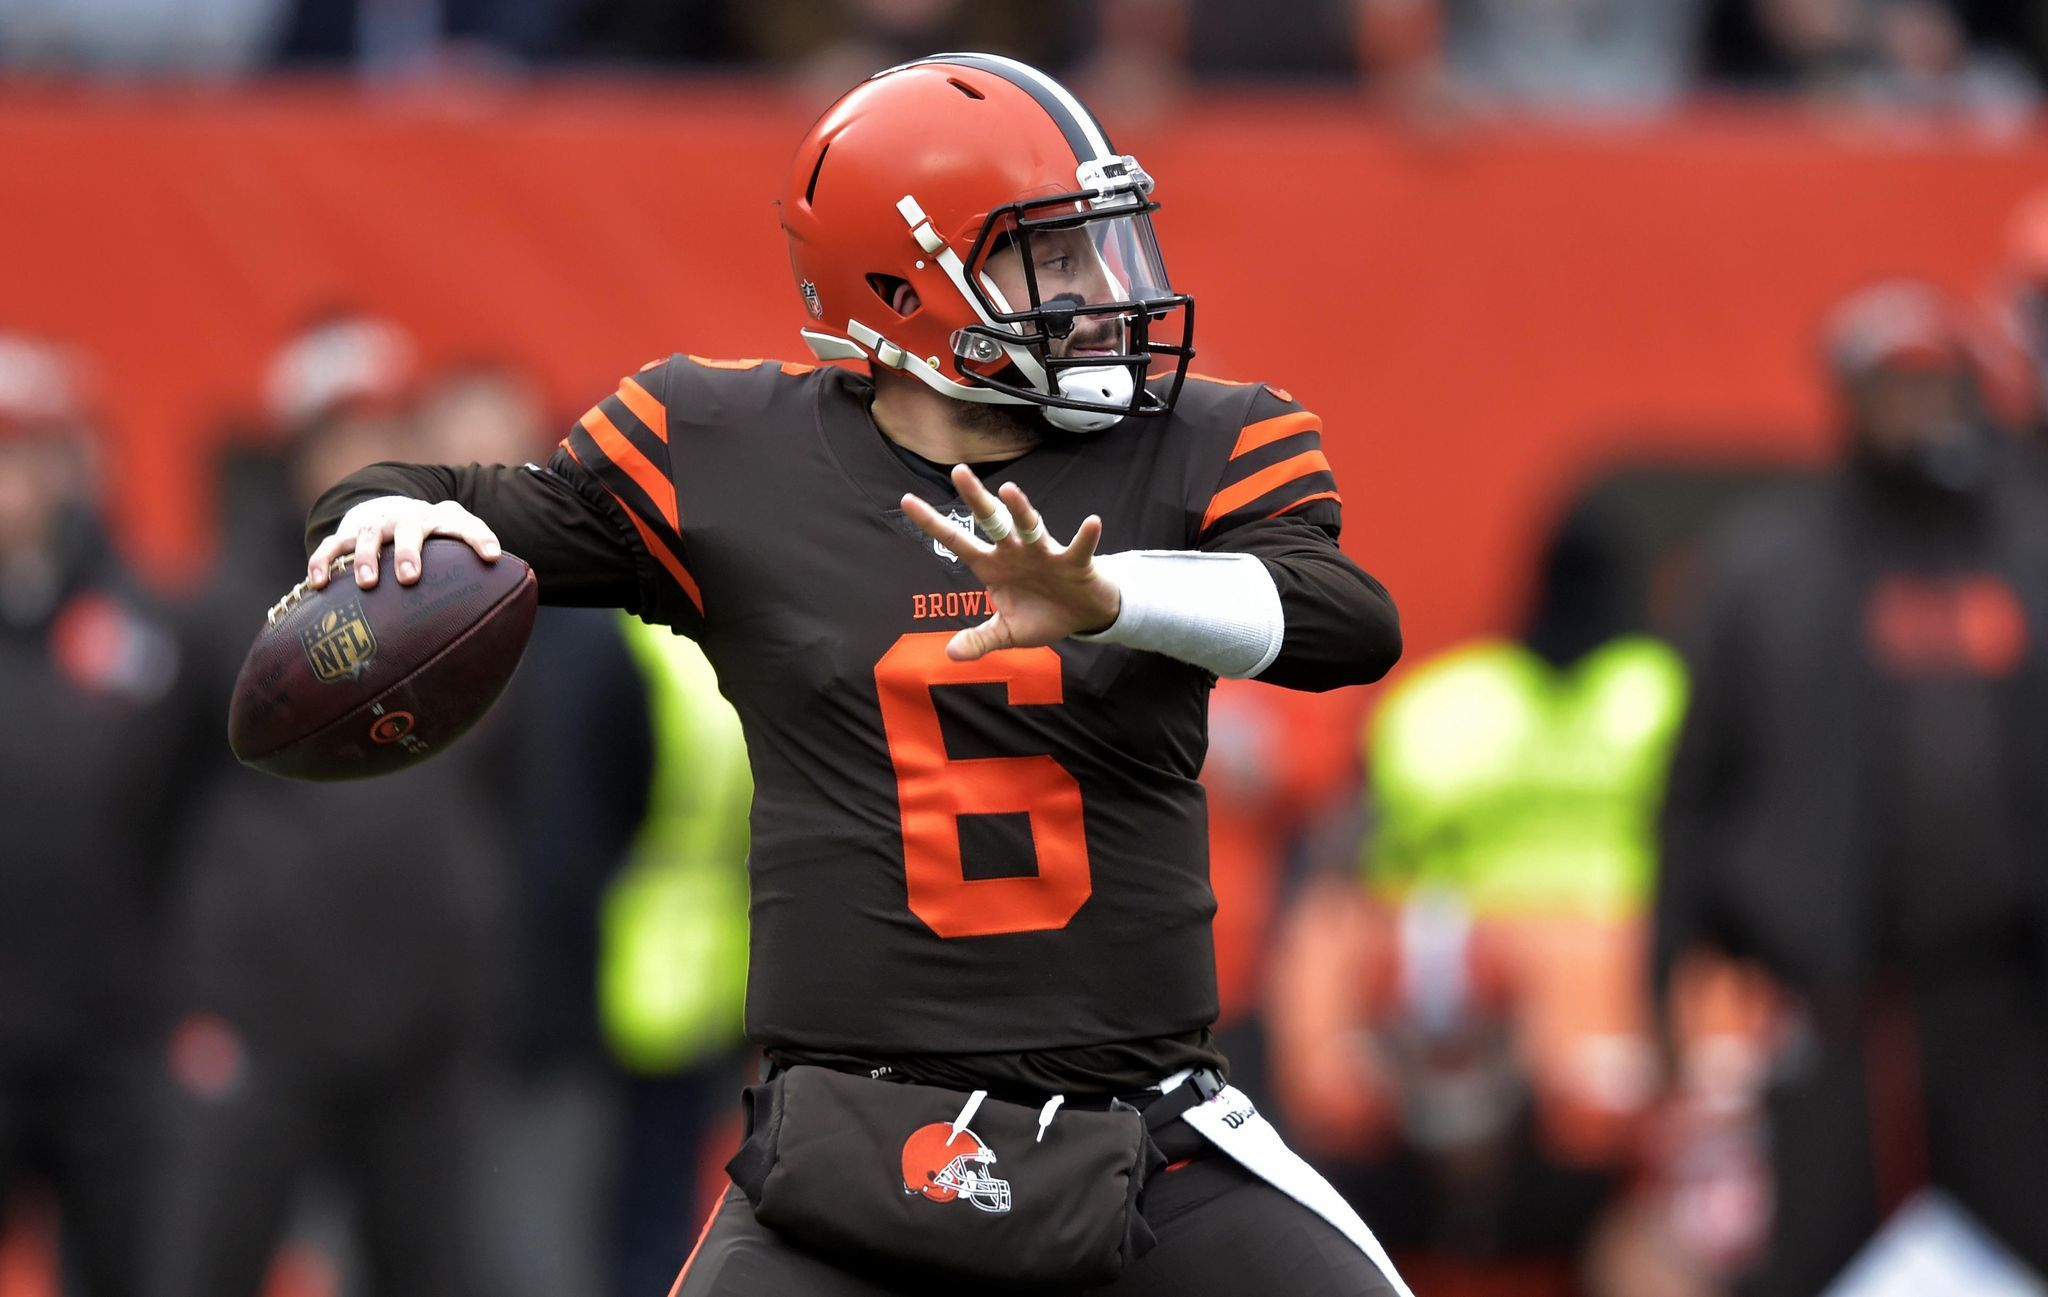 NFL ICYMI Baker gets a win, and sends his best to Hue